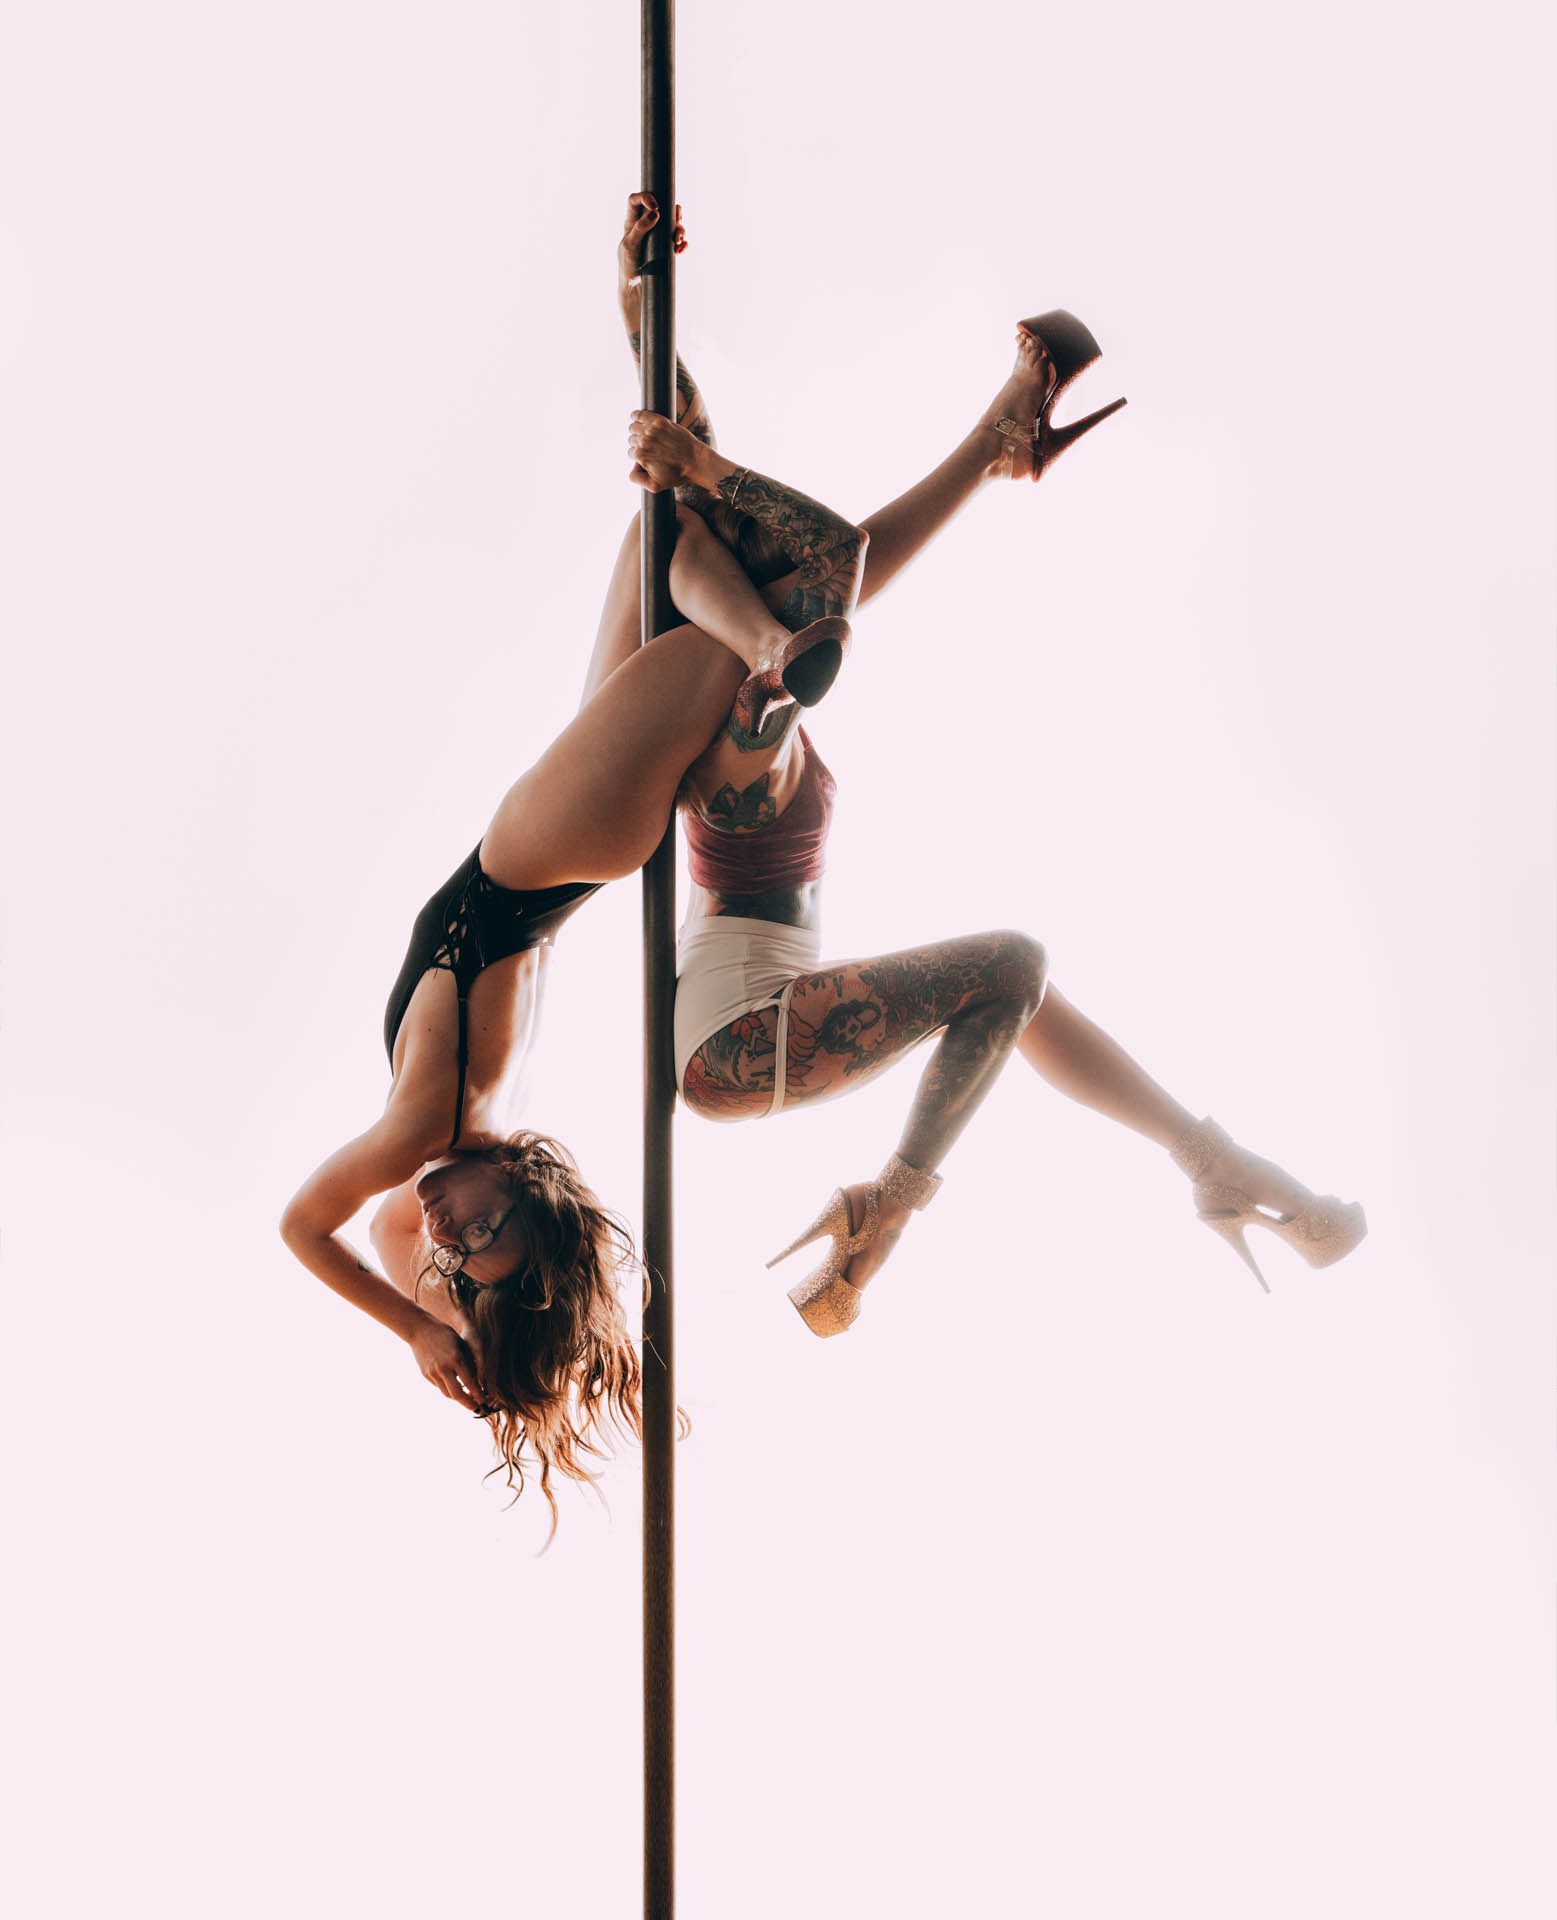 pole-dancers-acrobatic.JPG